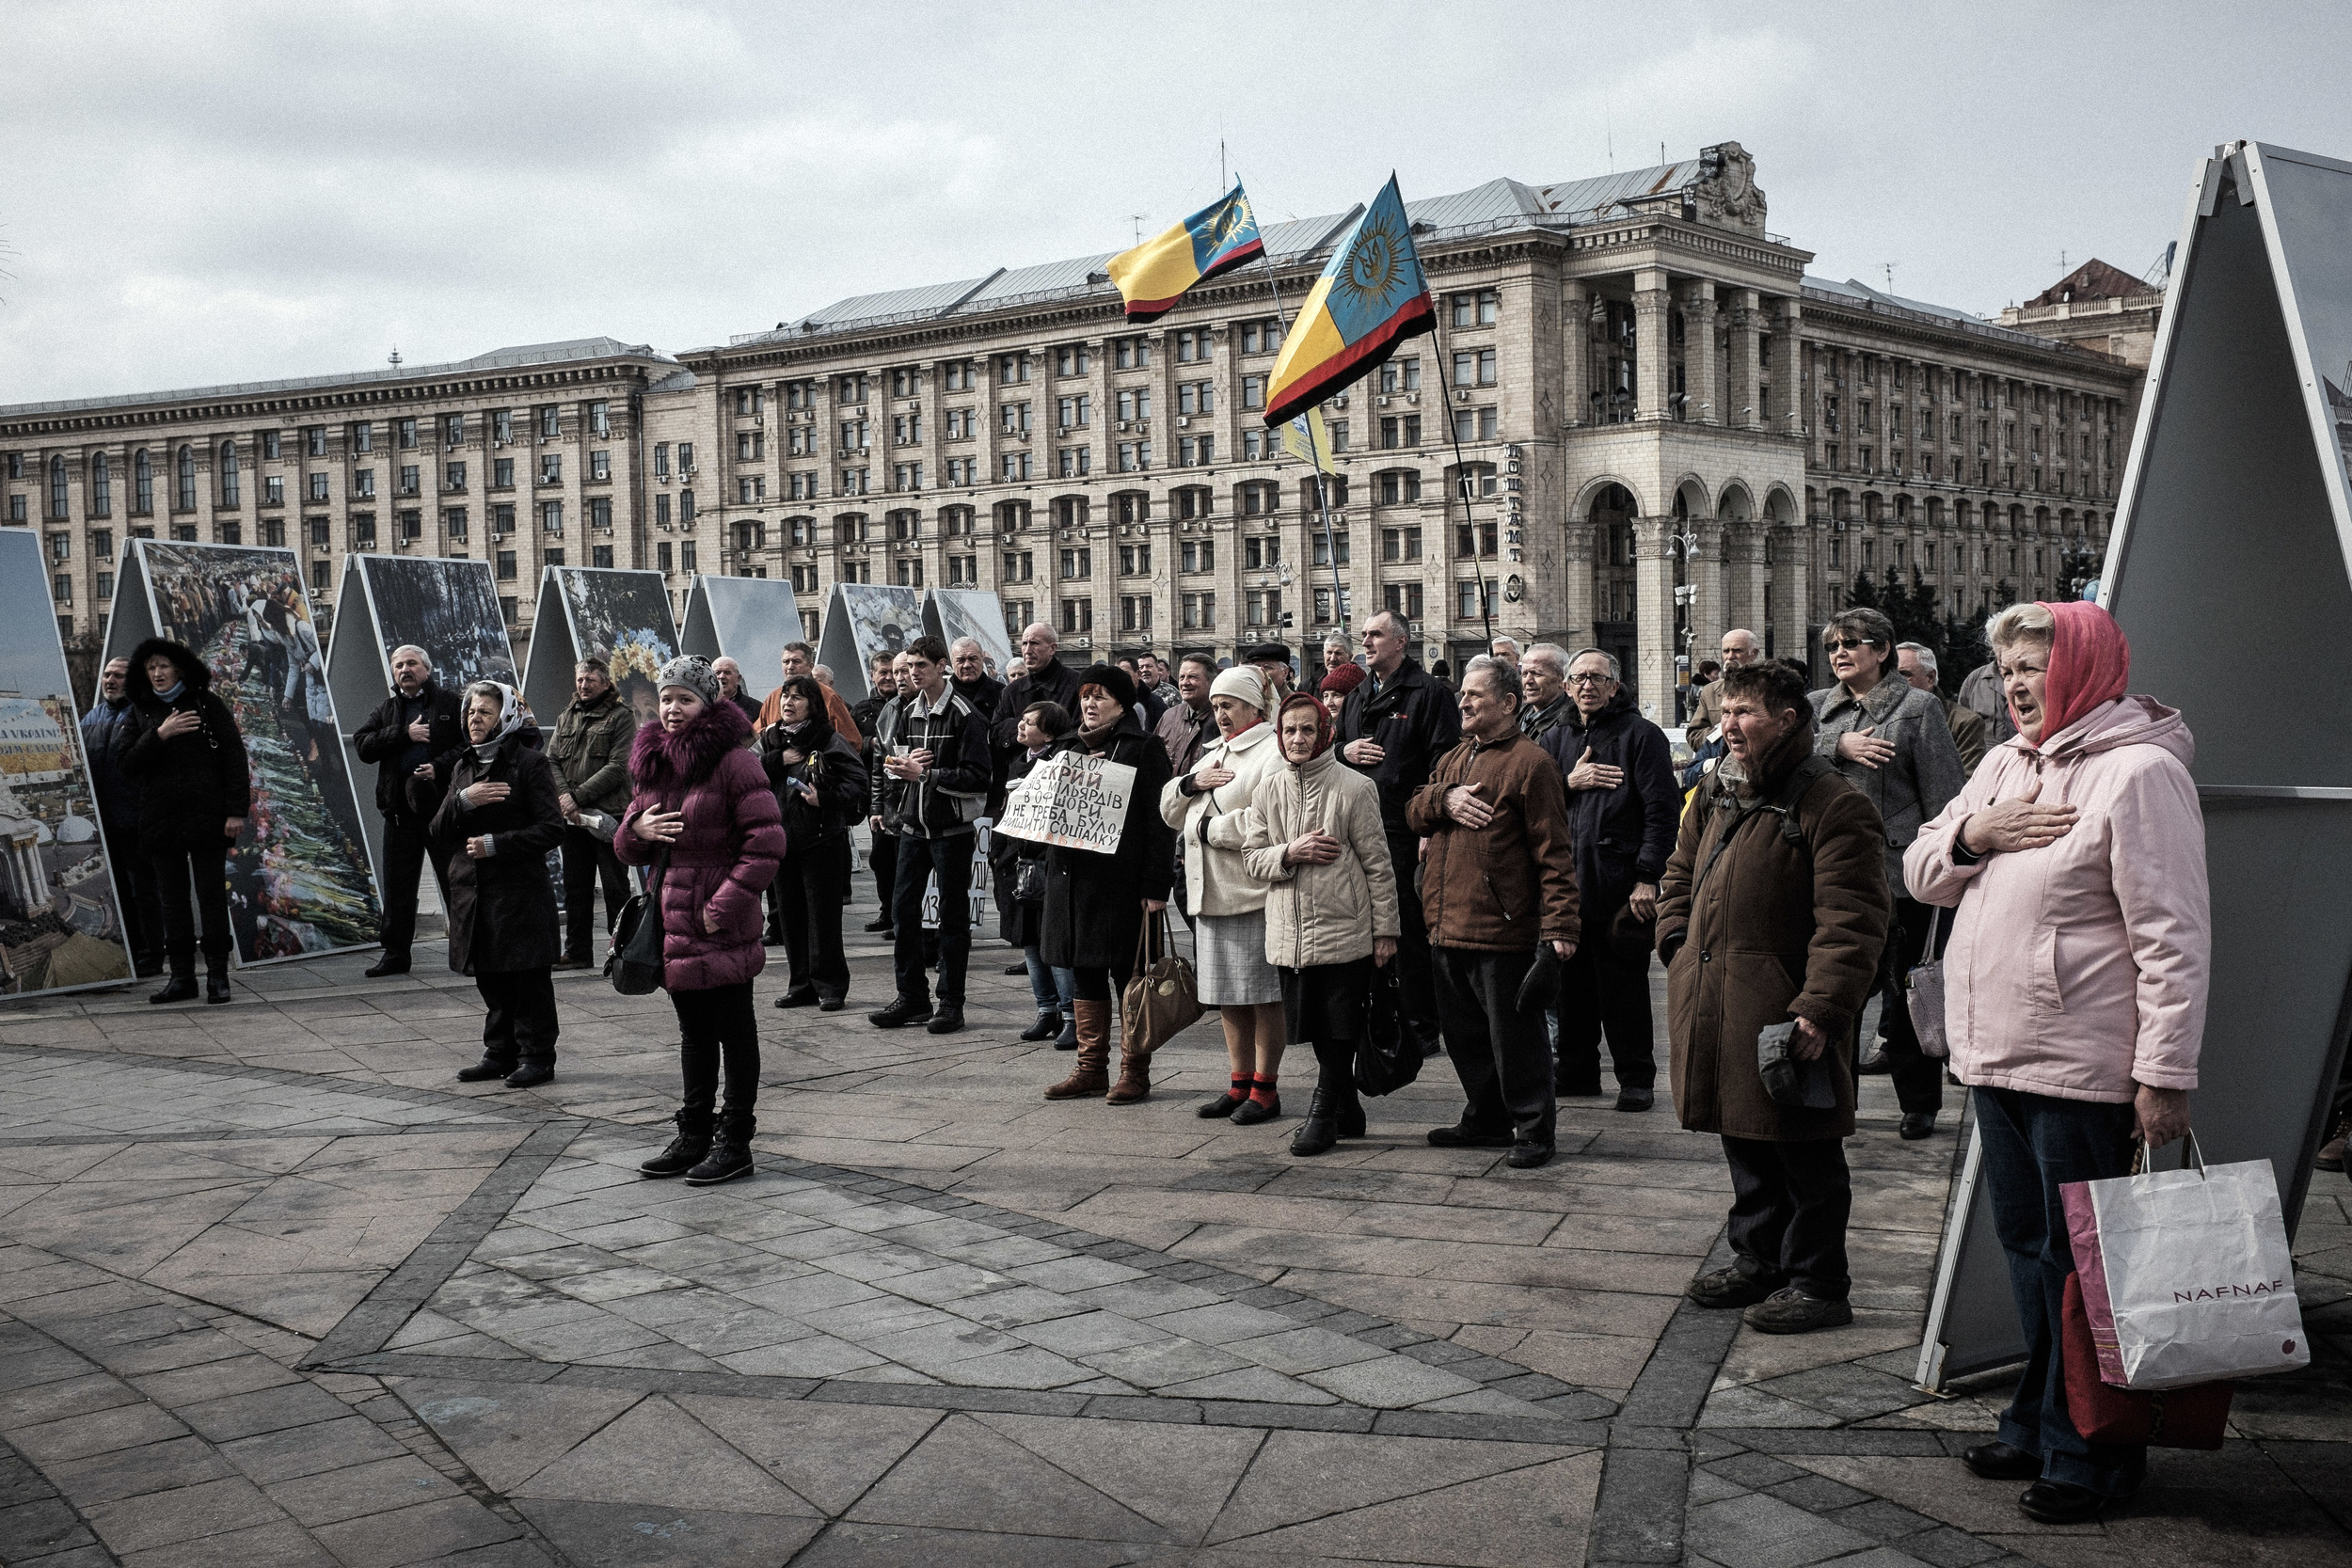 Protesters sing the national anthem. Maidan square, Kiev, Ukraine, 2015